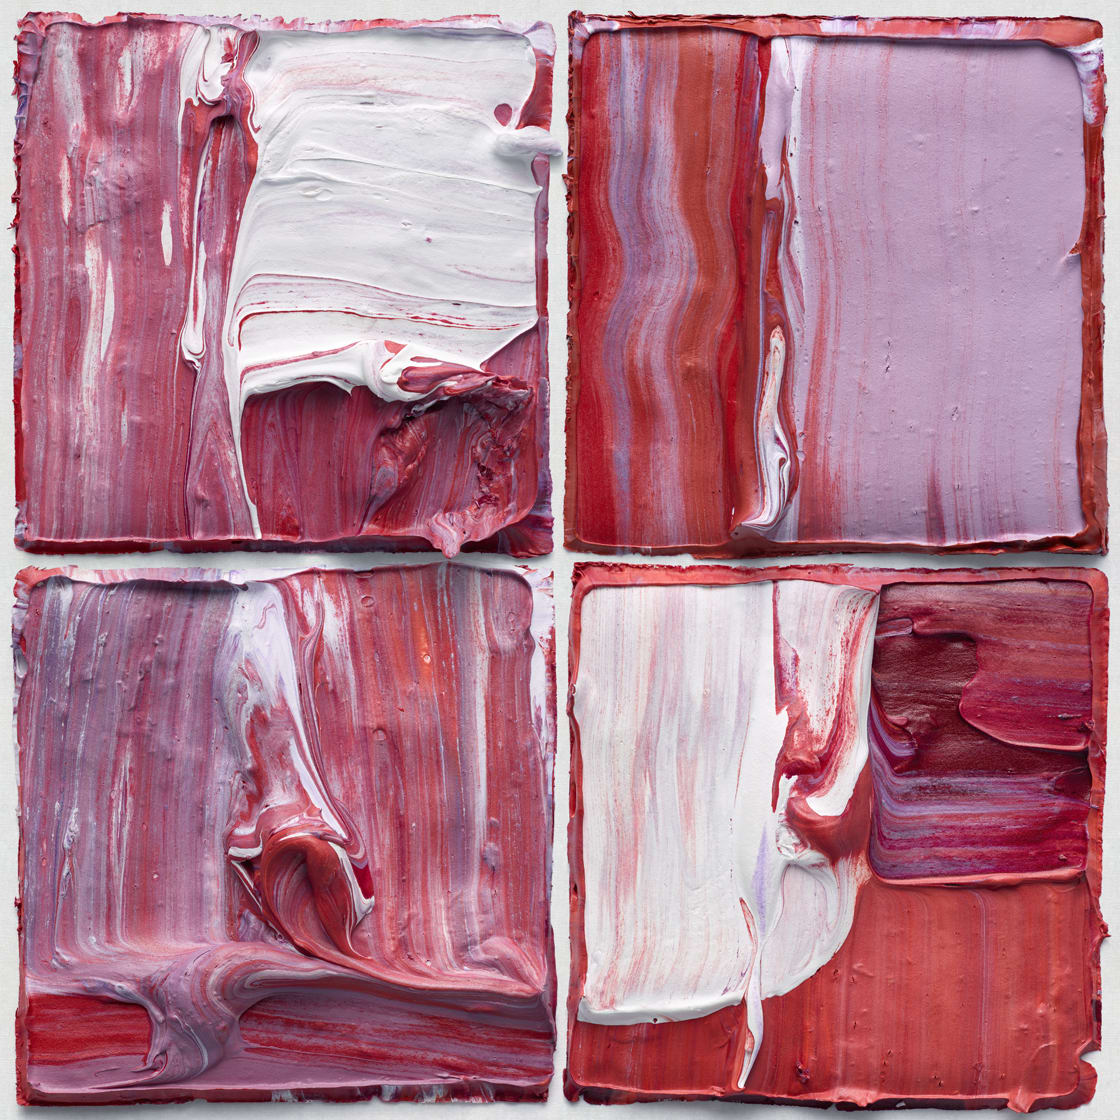 'Multiform X4 Red Purple 01' - Judy D Shane at Kostuik Gallery